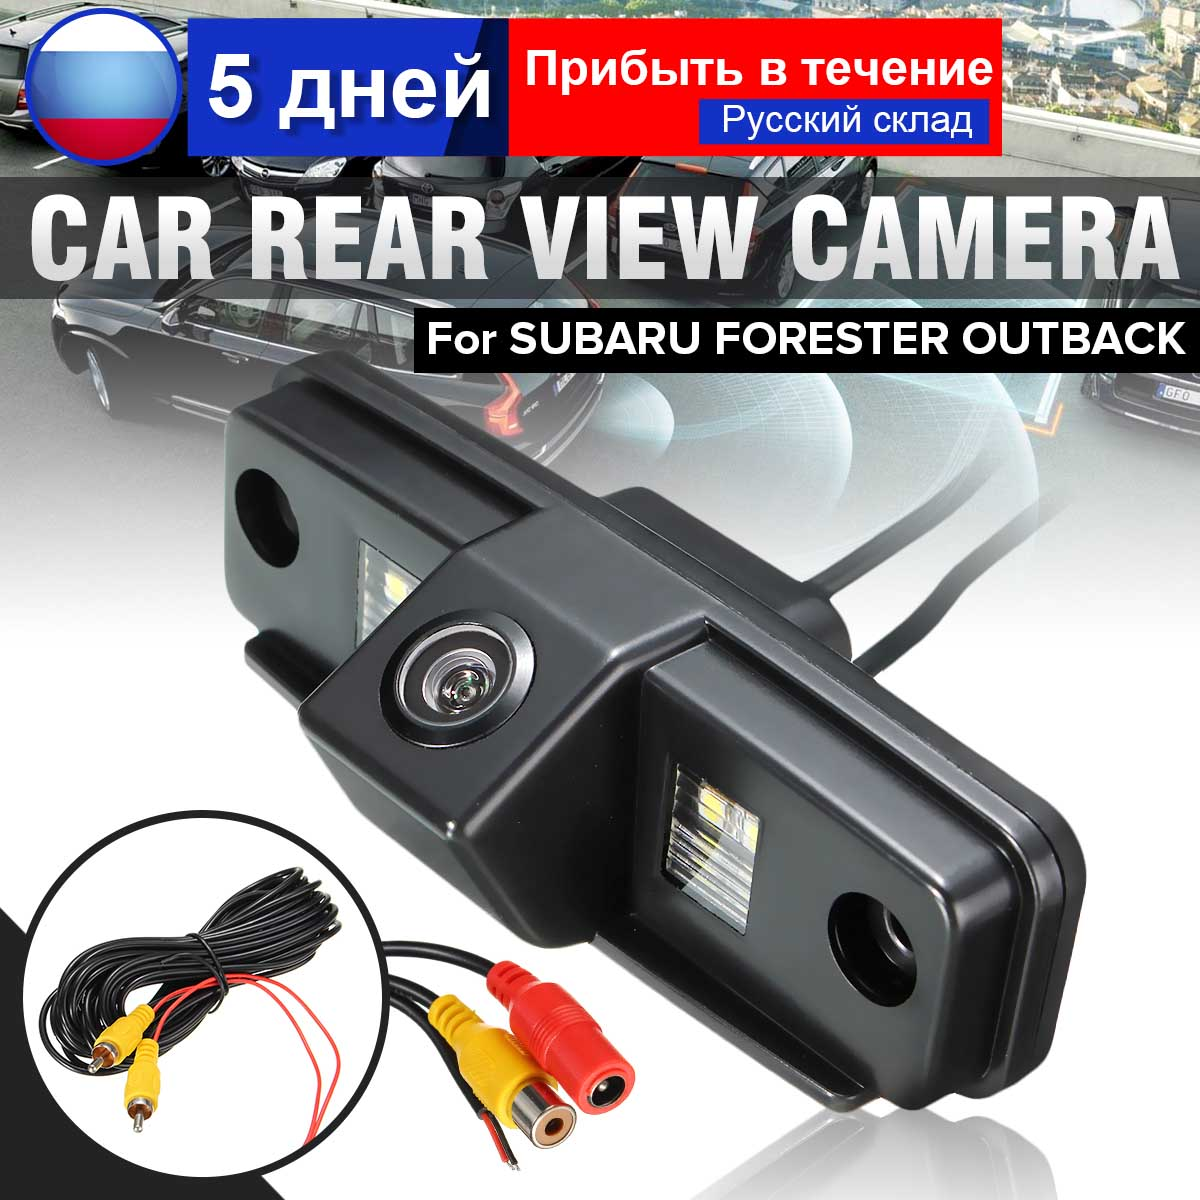 Car CCD Night Vision Backup Rear View Camera Parking Reverse Cameras For Subaru/Forester/Outback 2007-2012/Sedan/Tribeca Car CCD Night Vision Backup Rear View Camera Parking Reverse Cameras For Subaru/Forester/Outback 2007-2012/Sedan/Tribeca